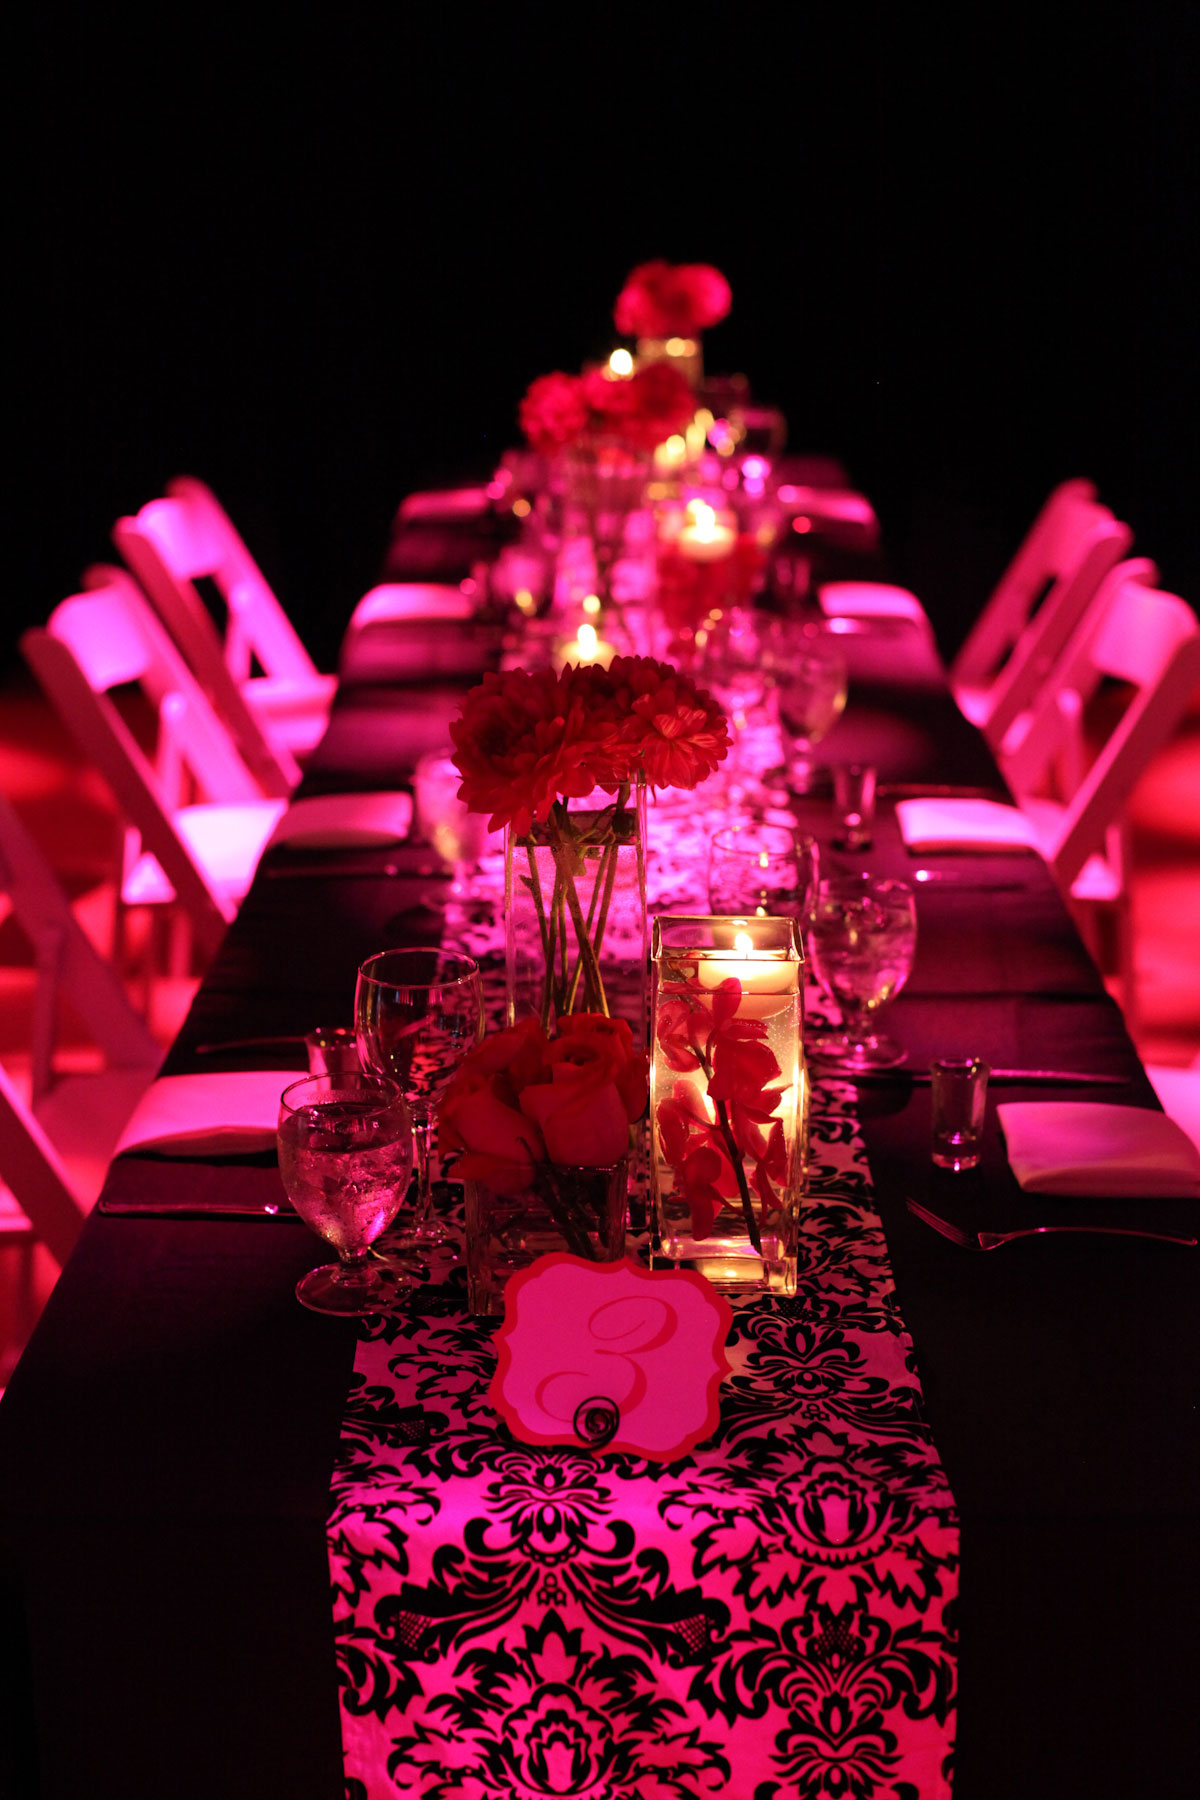 Granville Island Wedding - wedding decor decorations - Head Table - Uplighting - Candle Centerpiece